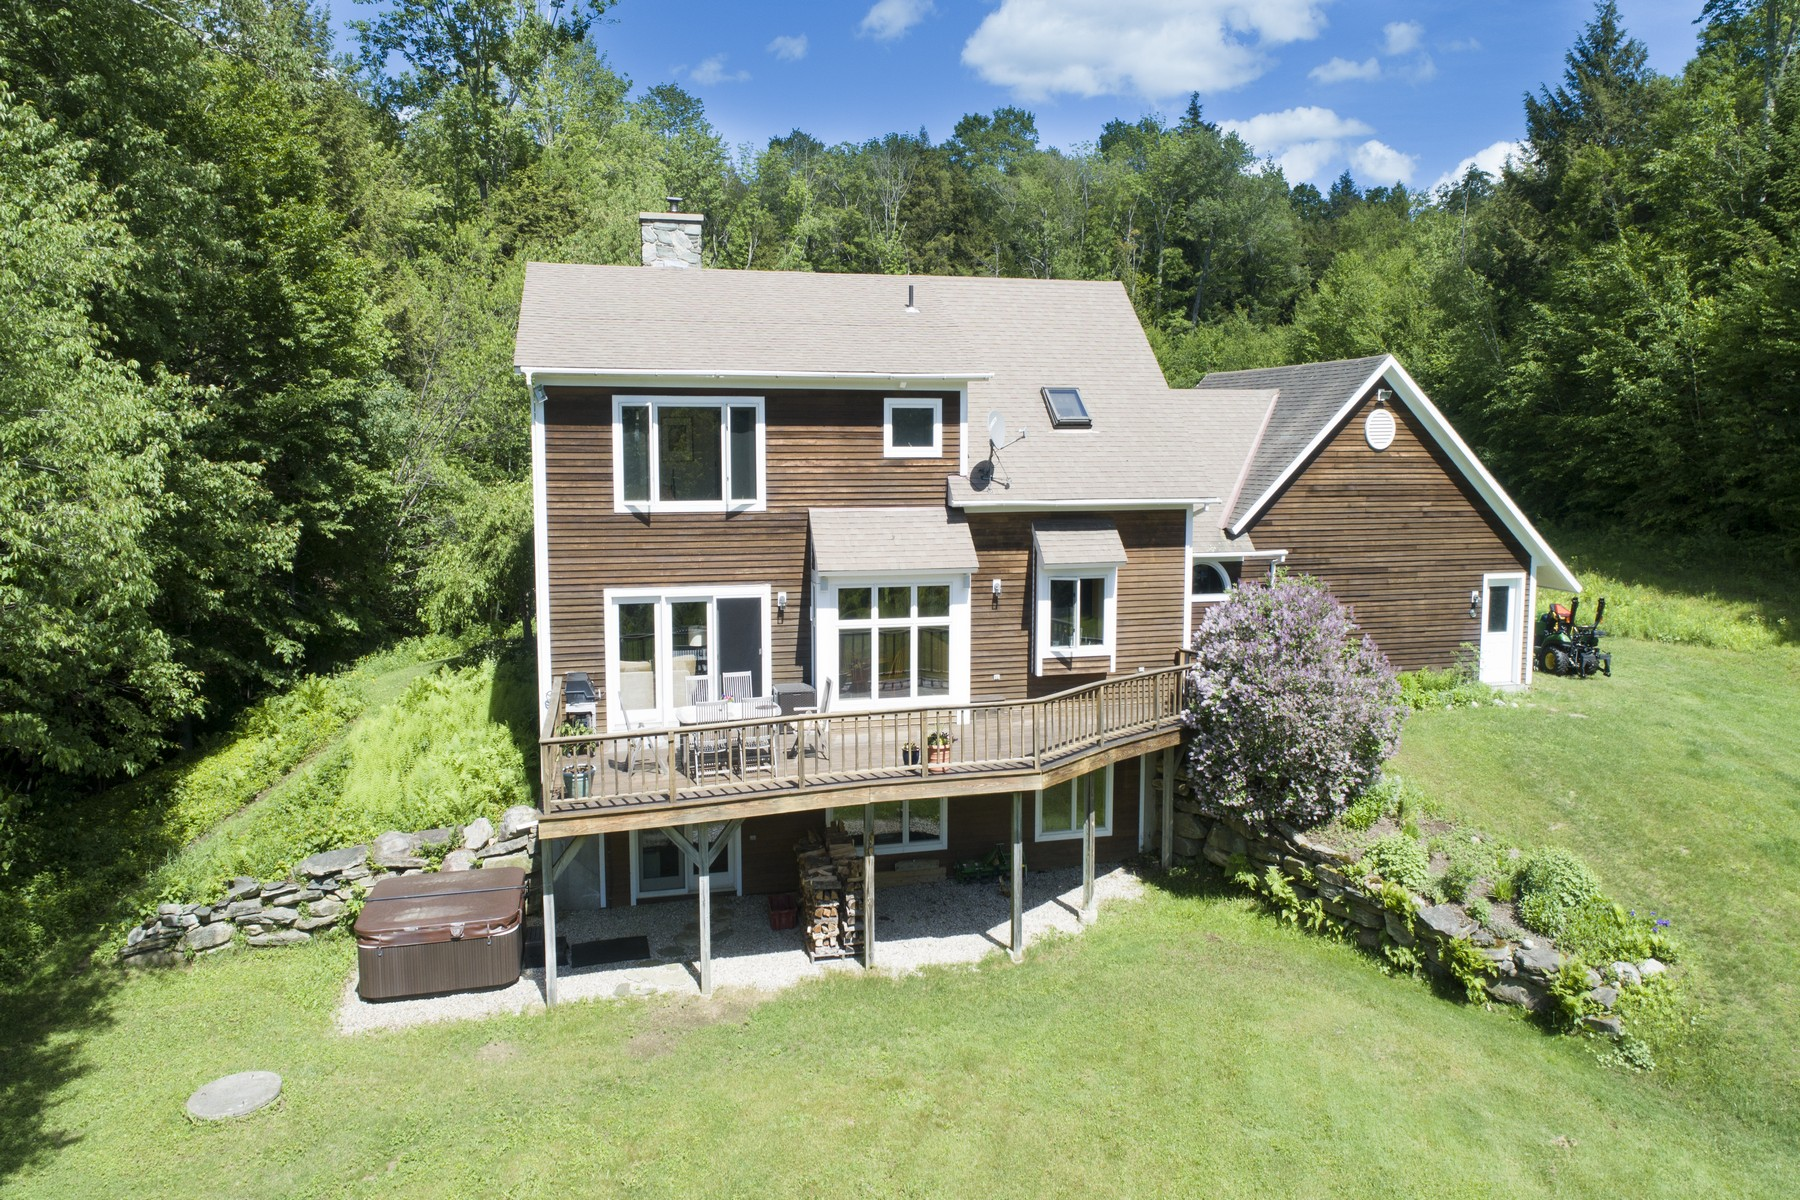 Single Family Homes for Sale at Cozy Country Getaway 143 Yaks Way Peru, Vermont 05152 United States